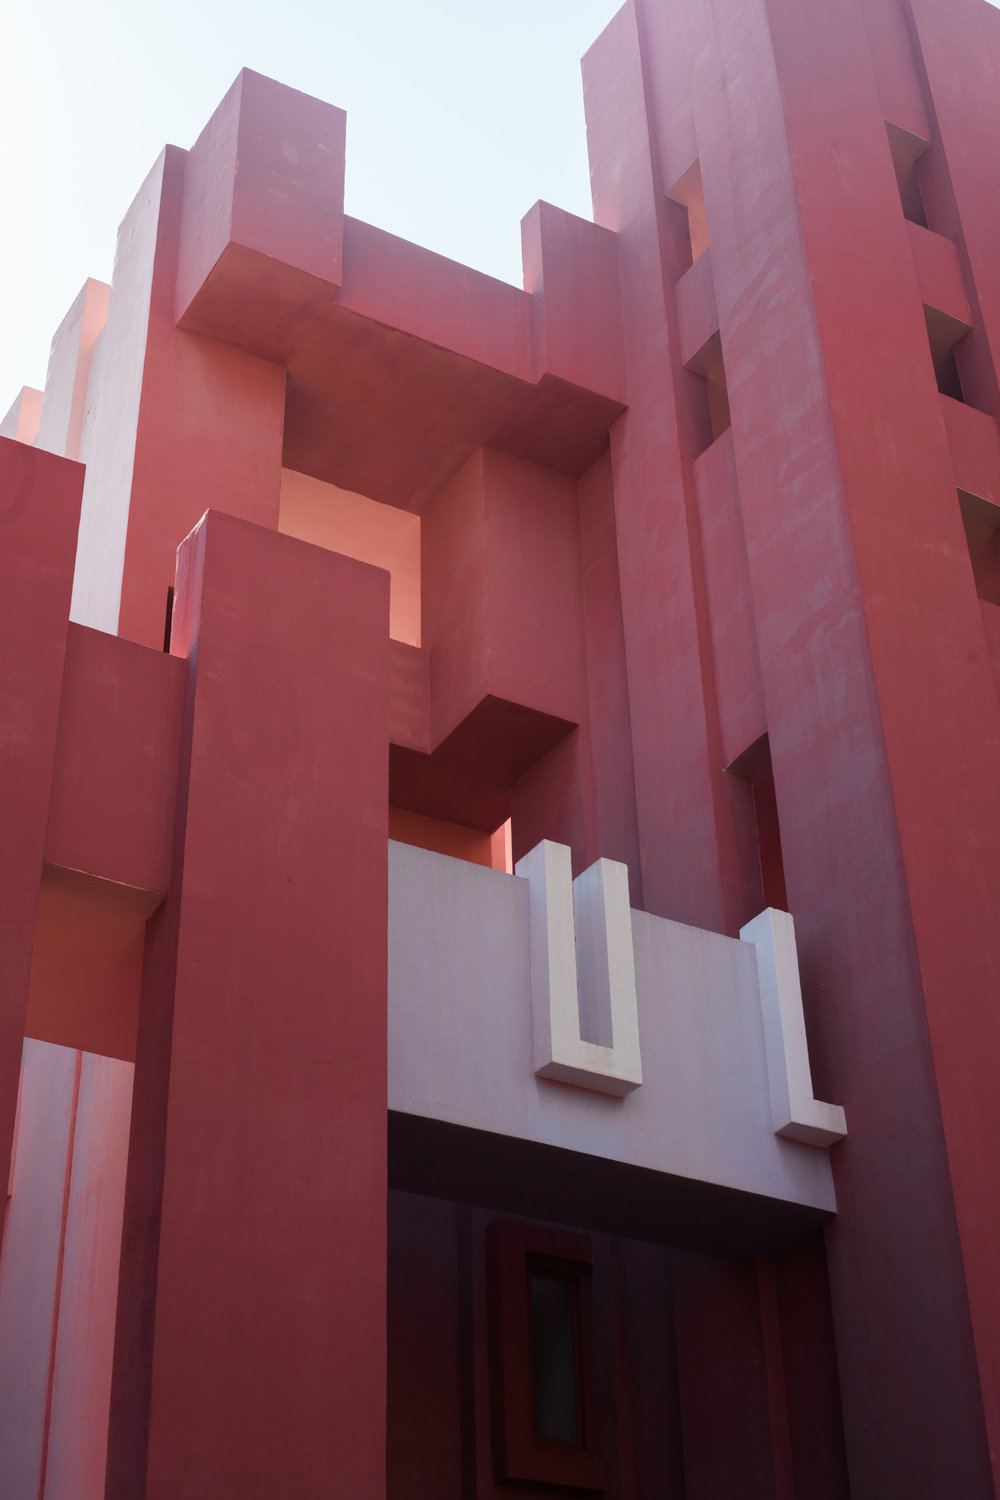 La Muralla Roja Ricardo Boffil by Workhouse Collective